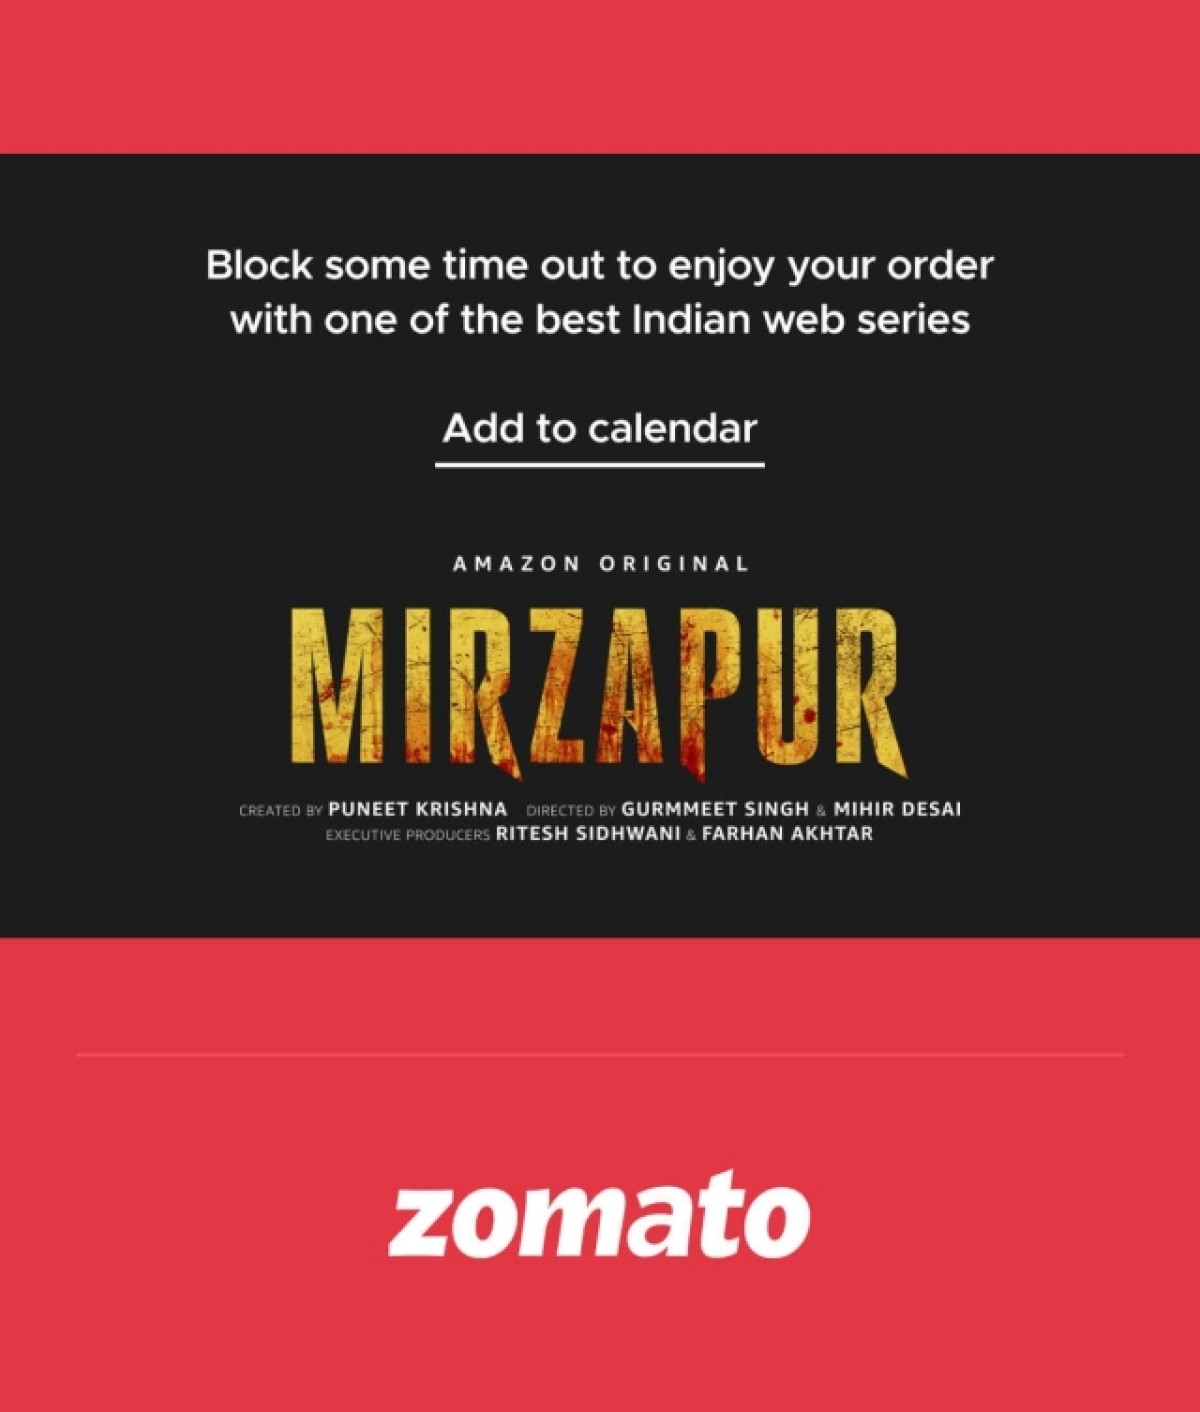 Zomato's new mailer delivers a letter to you from Santa Claus himself